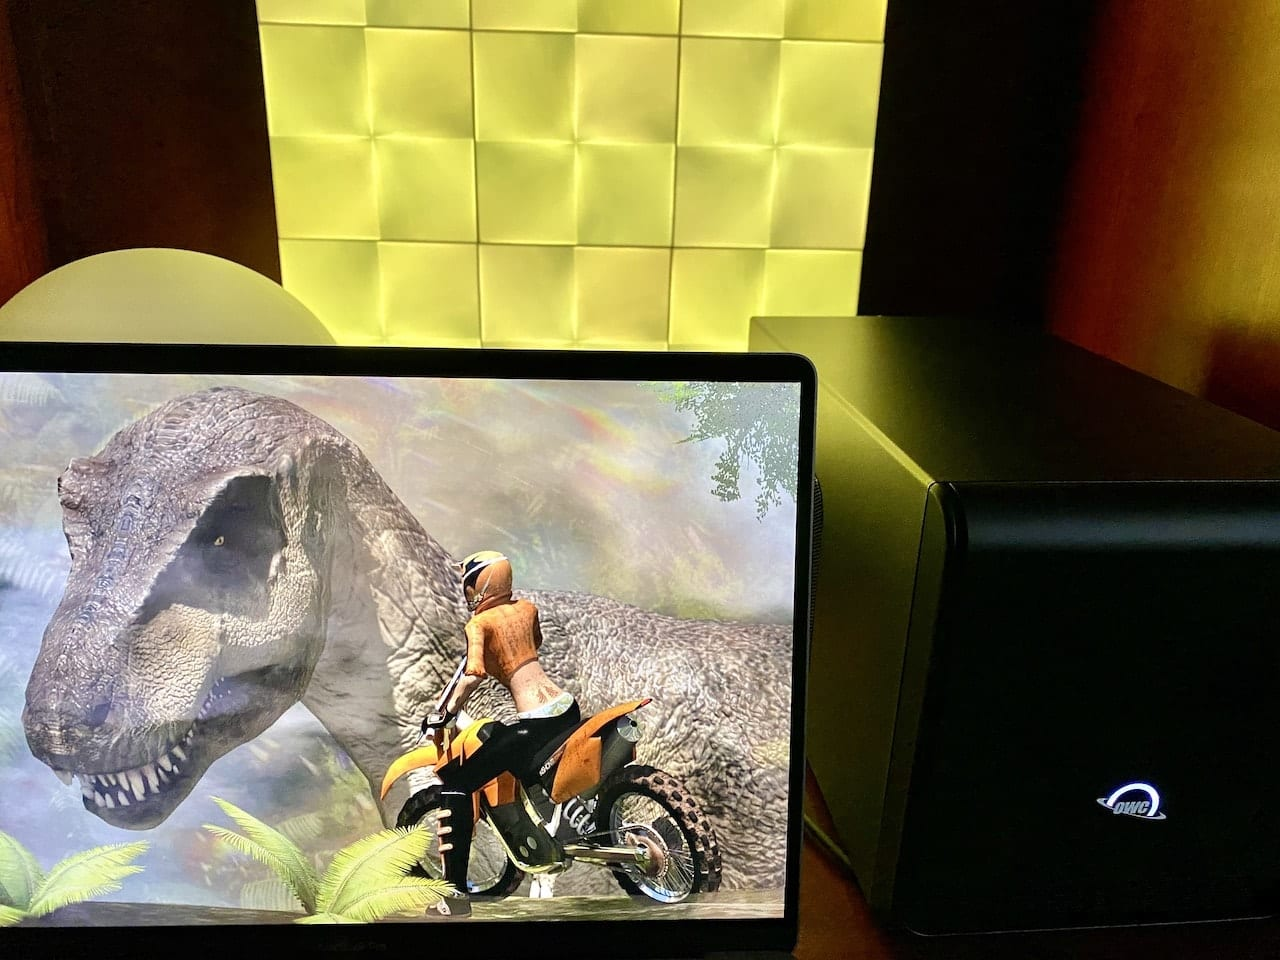 Gaming is a common use case for an eGPU